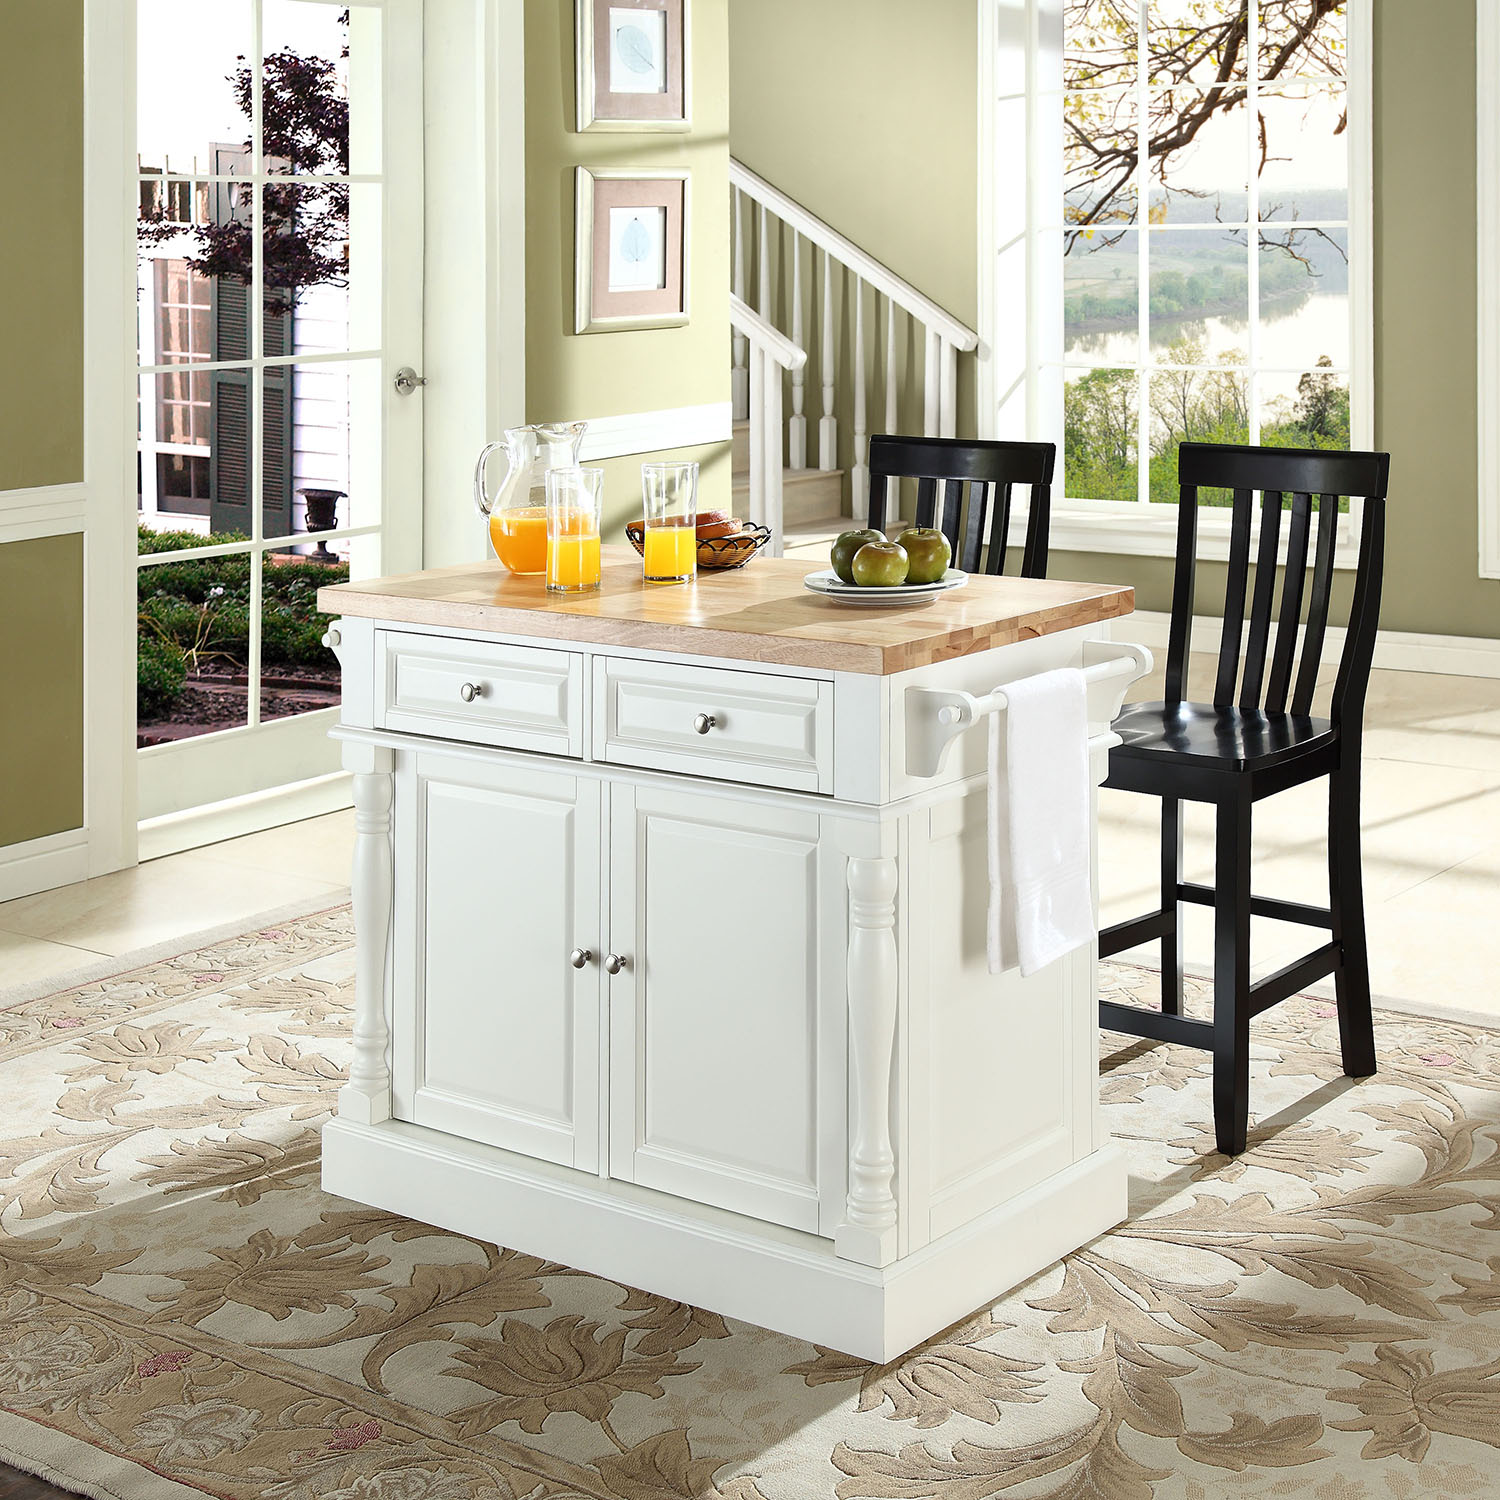 Butcher Block Top Kitchen Island with Black House Stools - White - CROS-KF300062WH